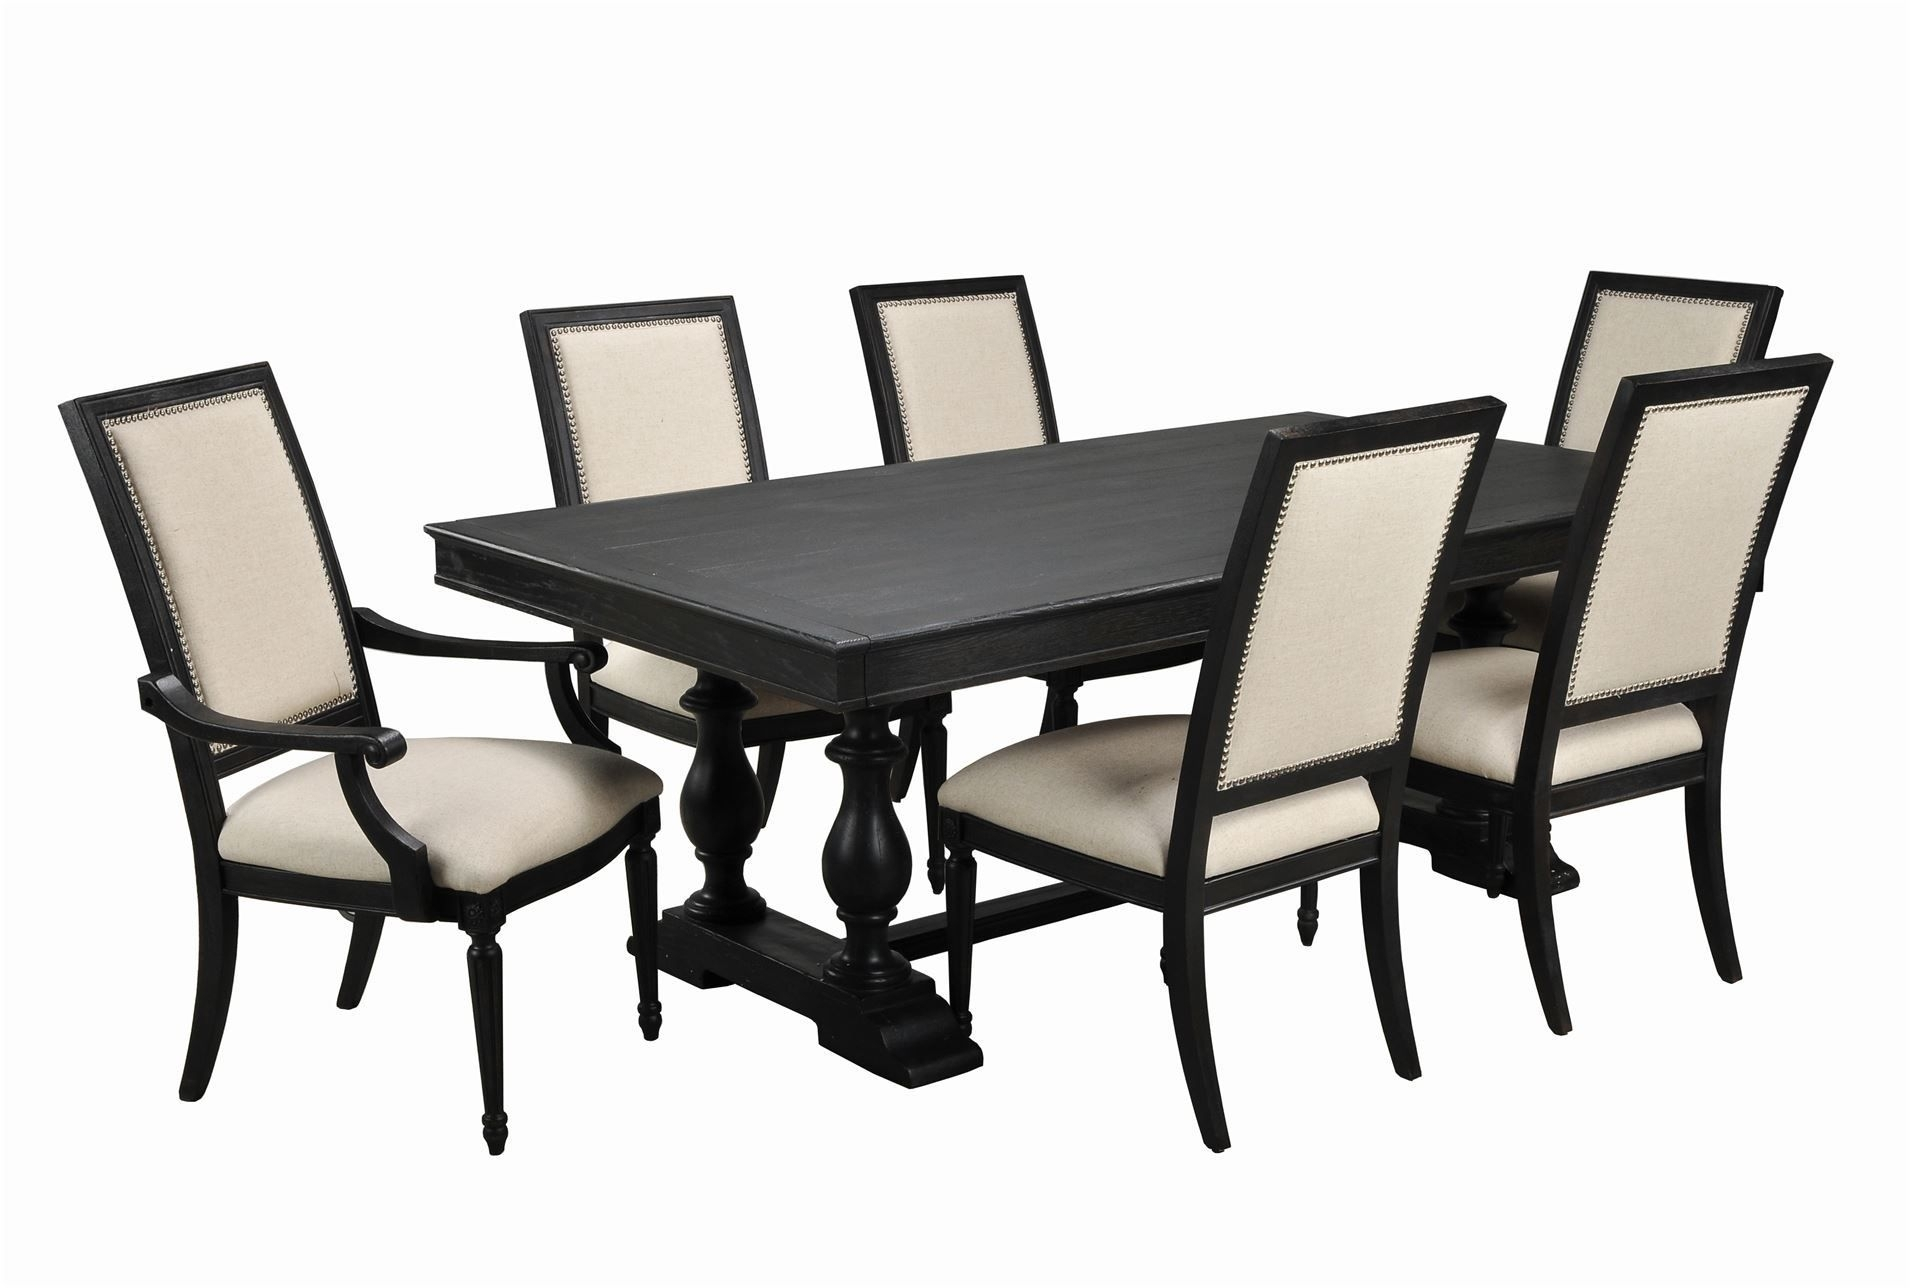 Chapleau 7 Piece Extension Dining Set | Decor & More | Pinterest Inside 2017 Chapleau Extension Dining Tables (Photo 6 of 20)